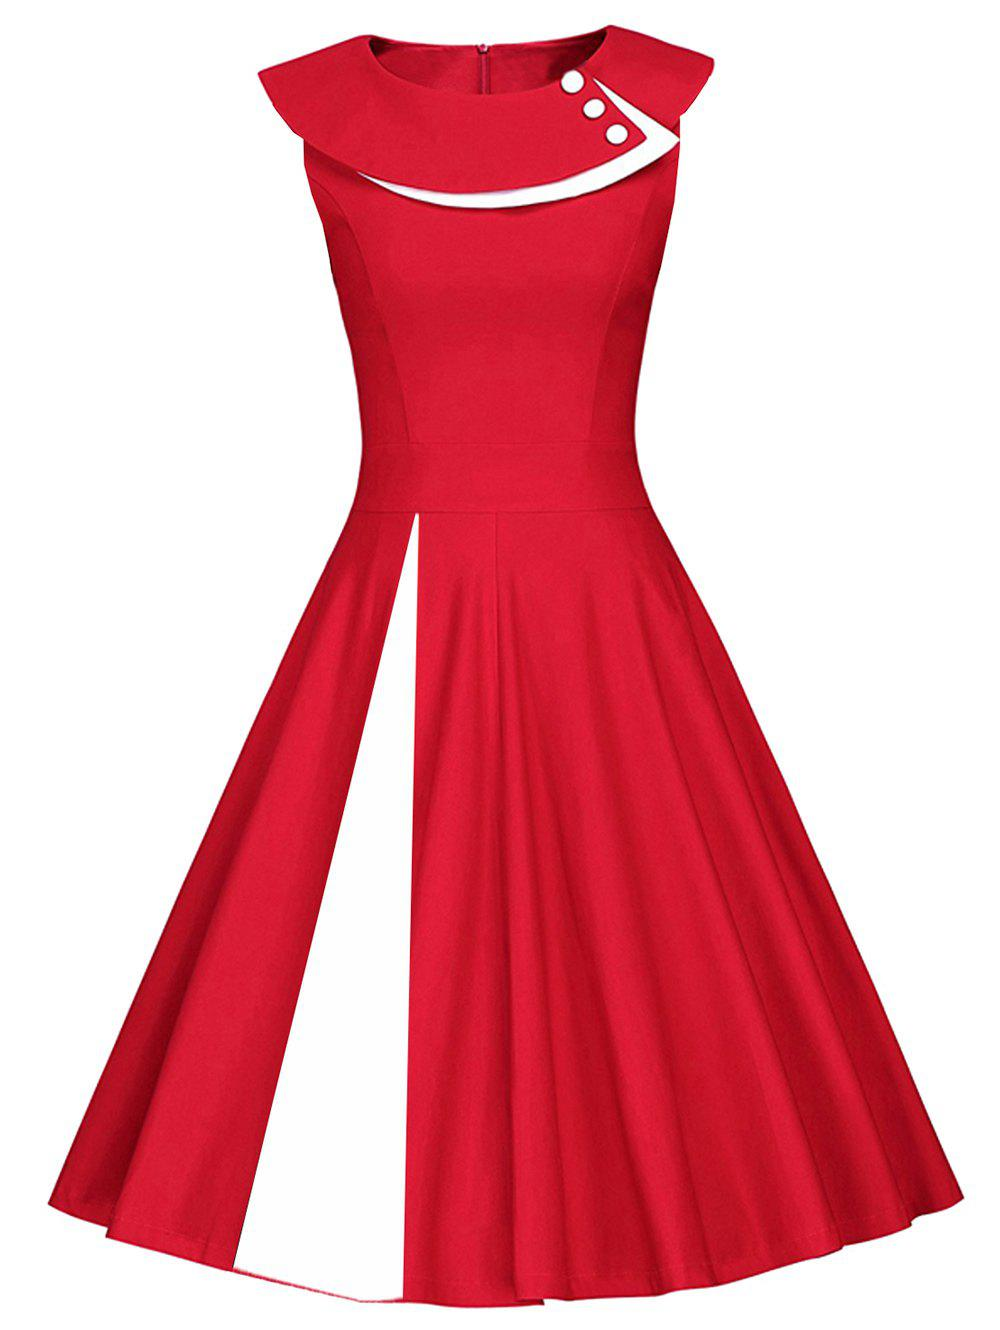 Colorblock Sleeveless Pleated A Line Dress - RED/WHITE M